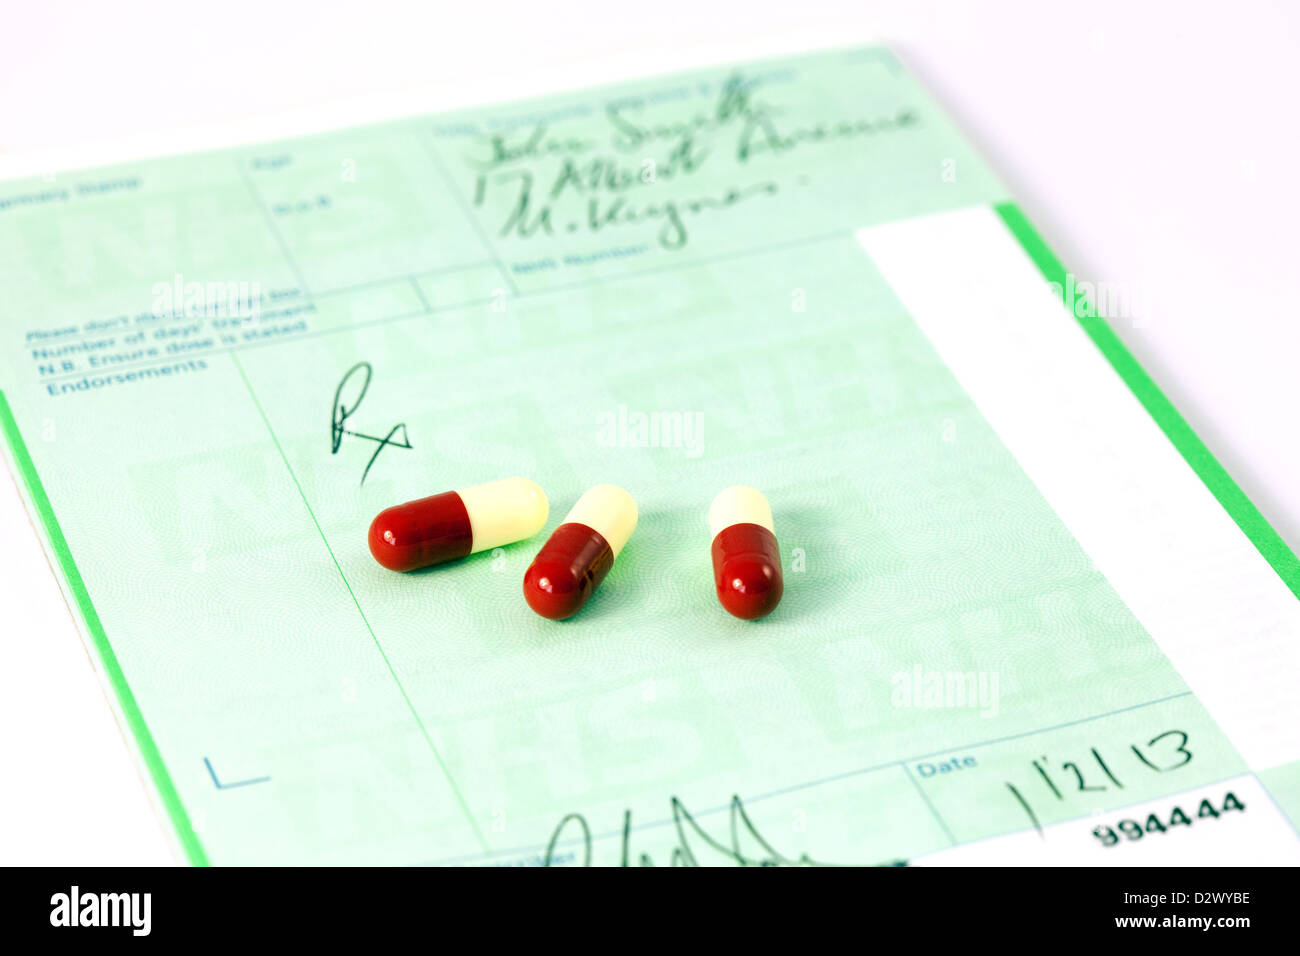 an nhs prescription pad and drugs